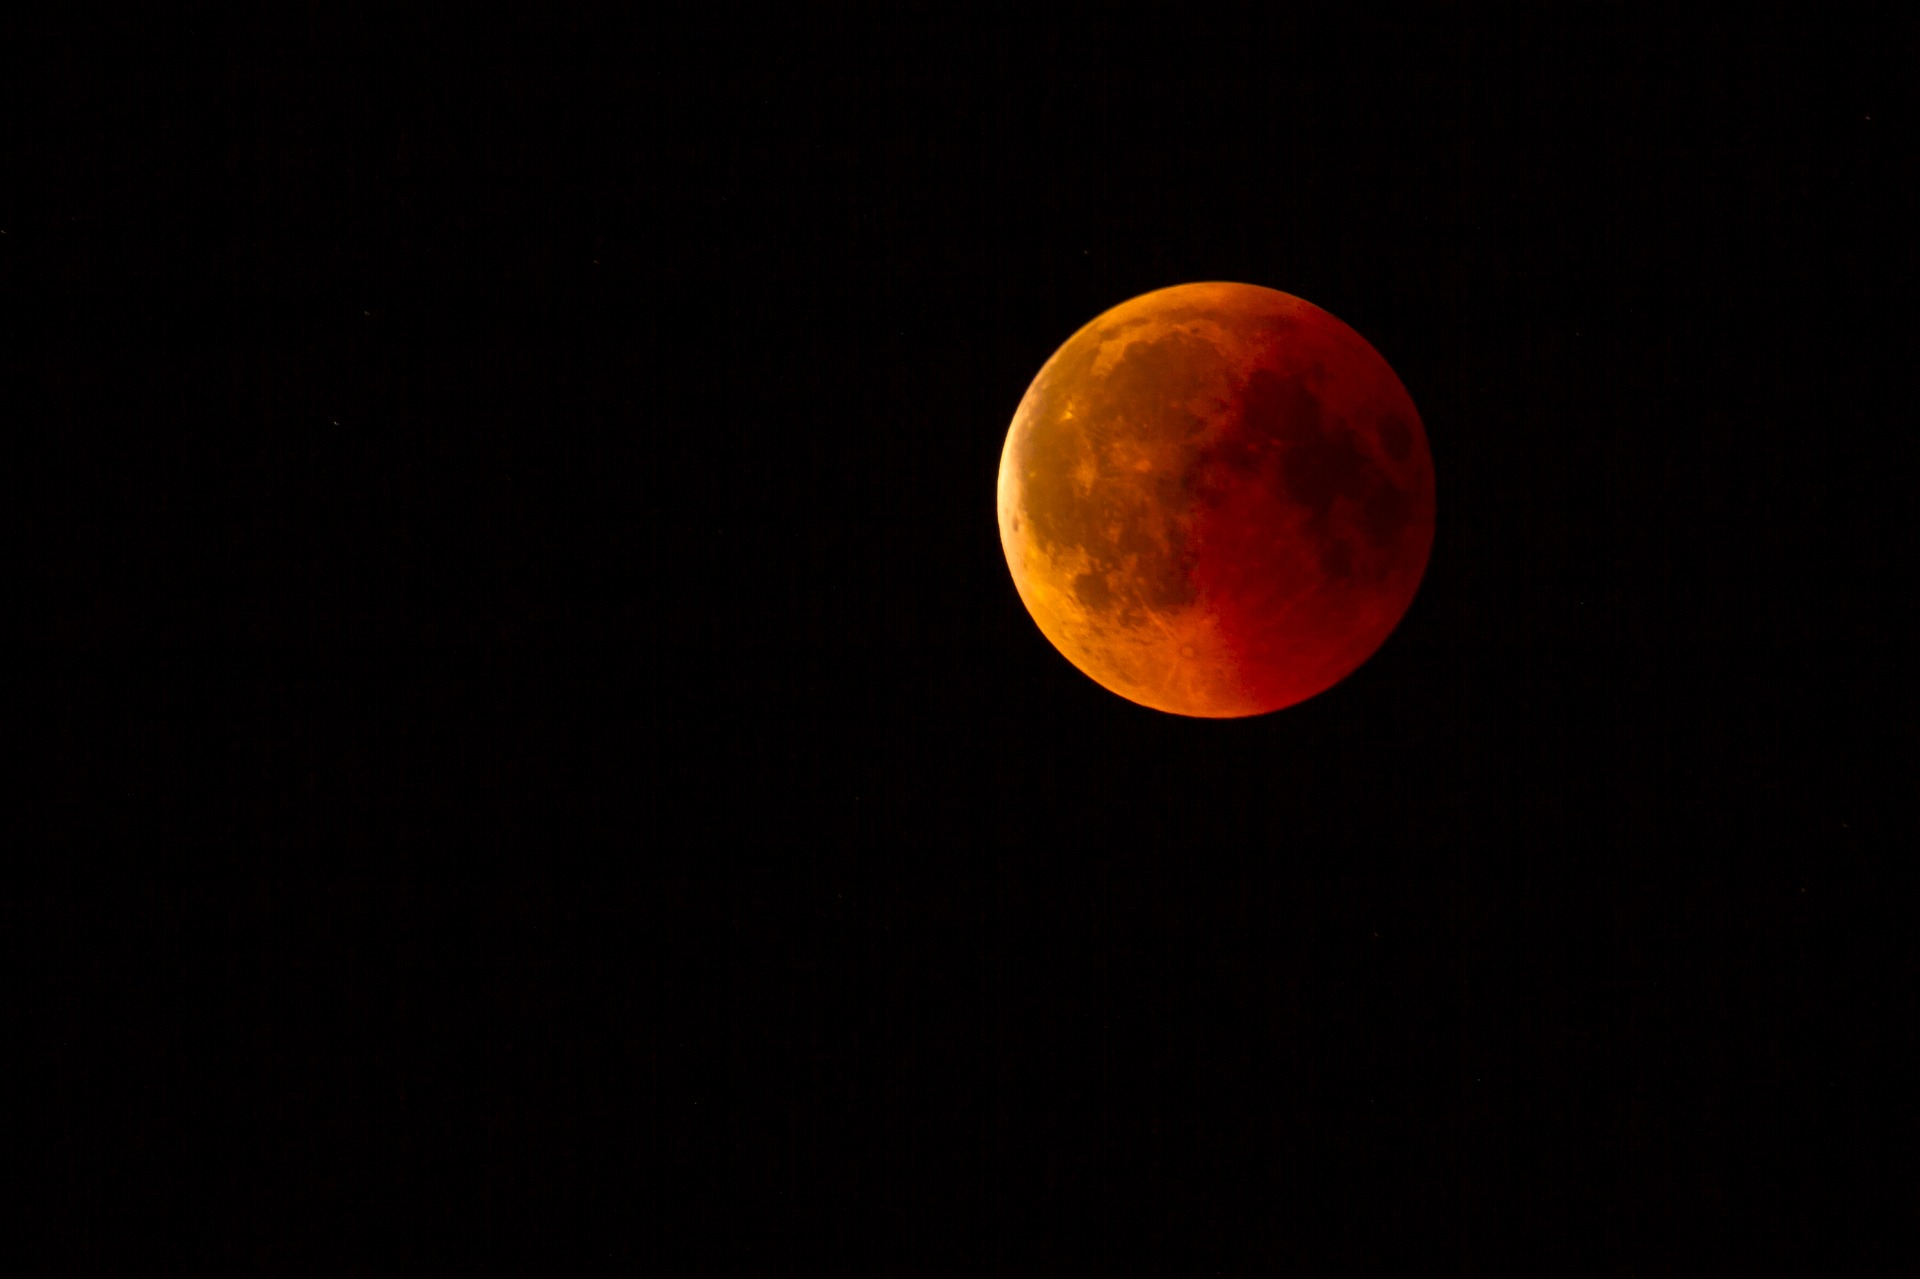 lunar-eclipse-3568801_1920.jpg